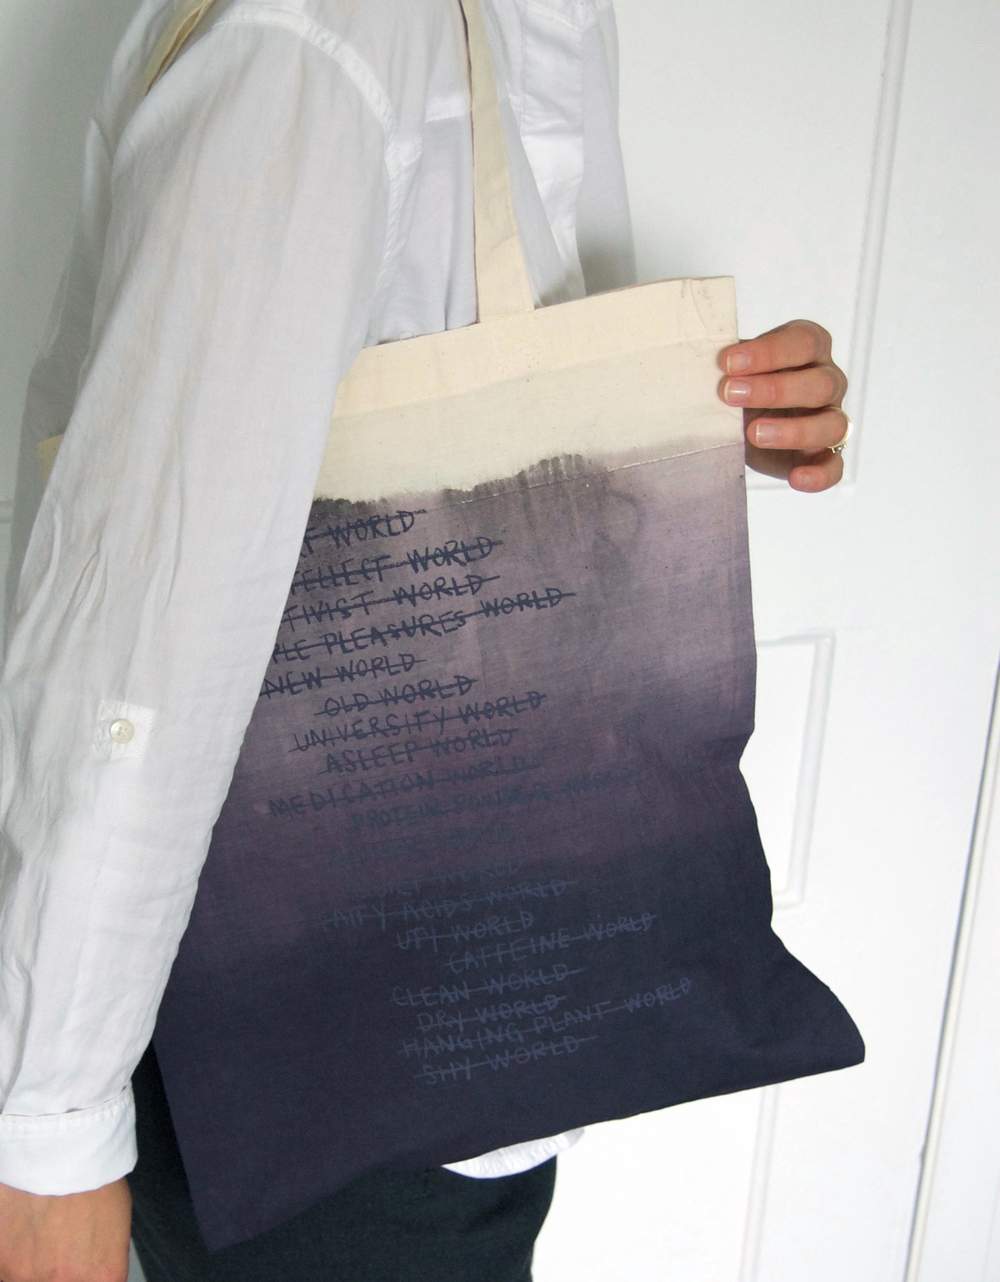 Hannah Enkel 'The Worlds Tote' SAGAN EDITIONS 2016. Hand dyed, silkscreened 100% cotton tote bag. Edition size: 12.